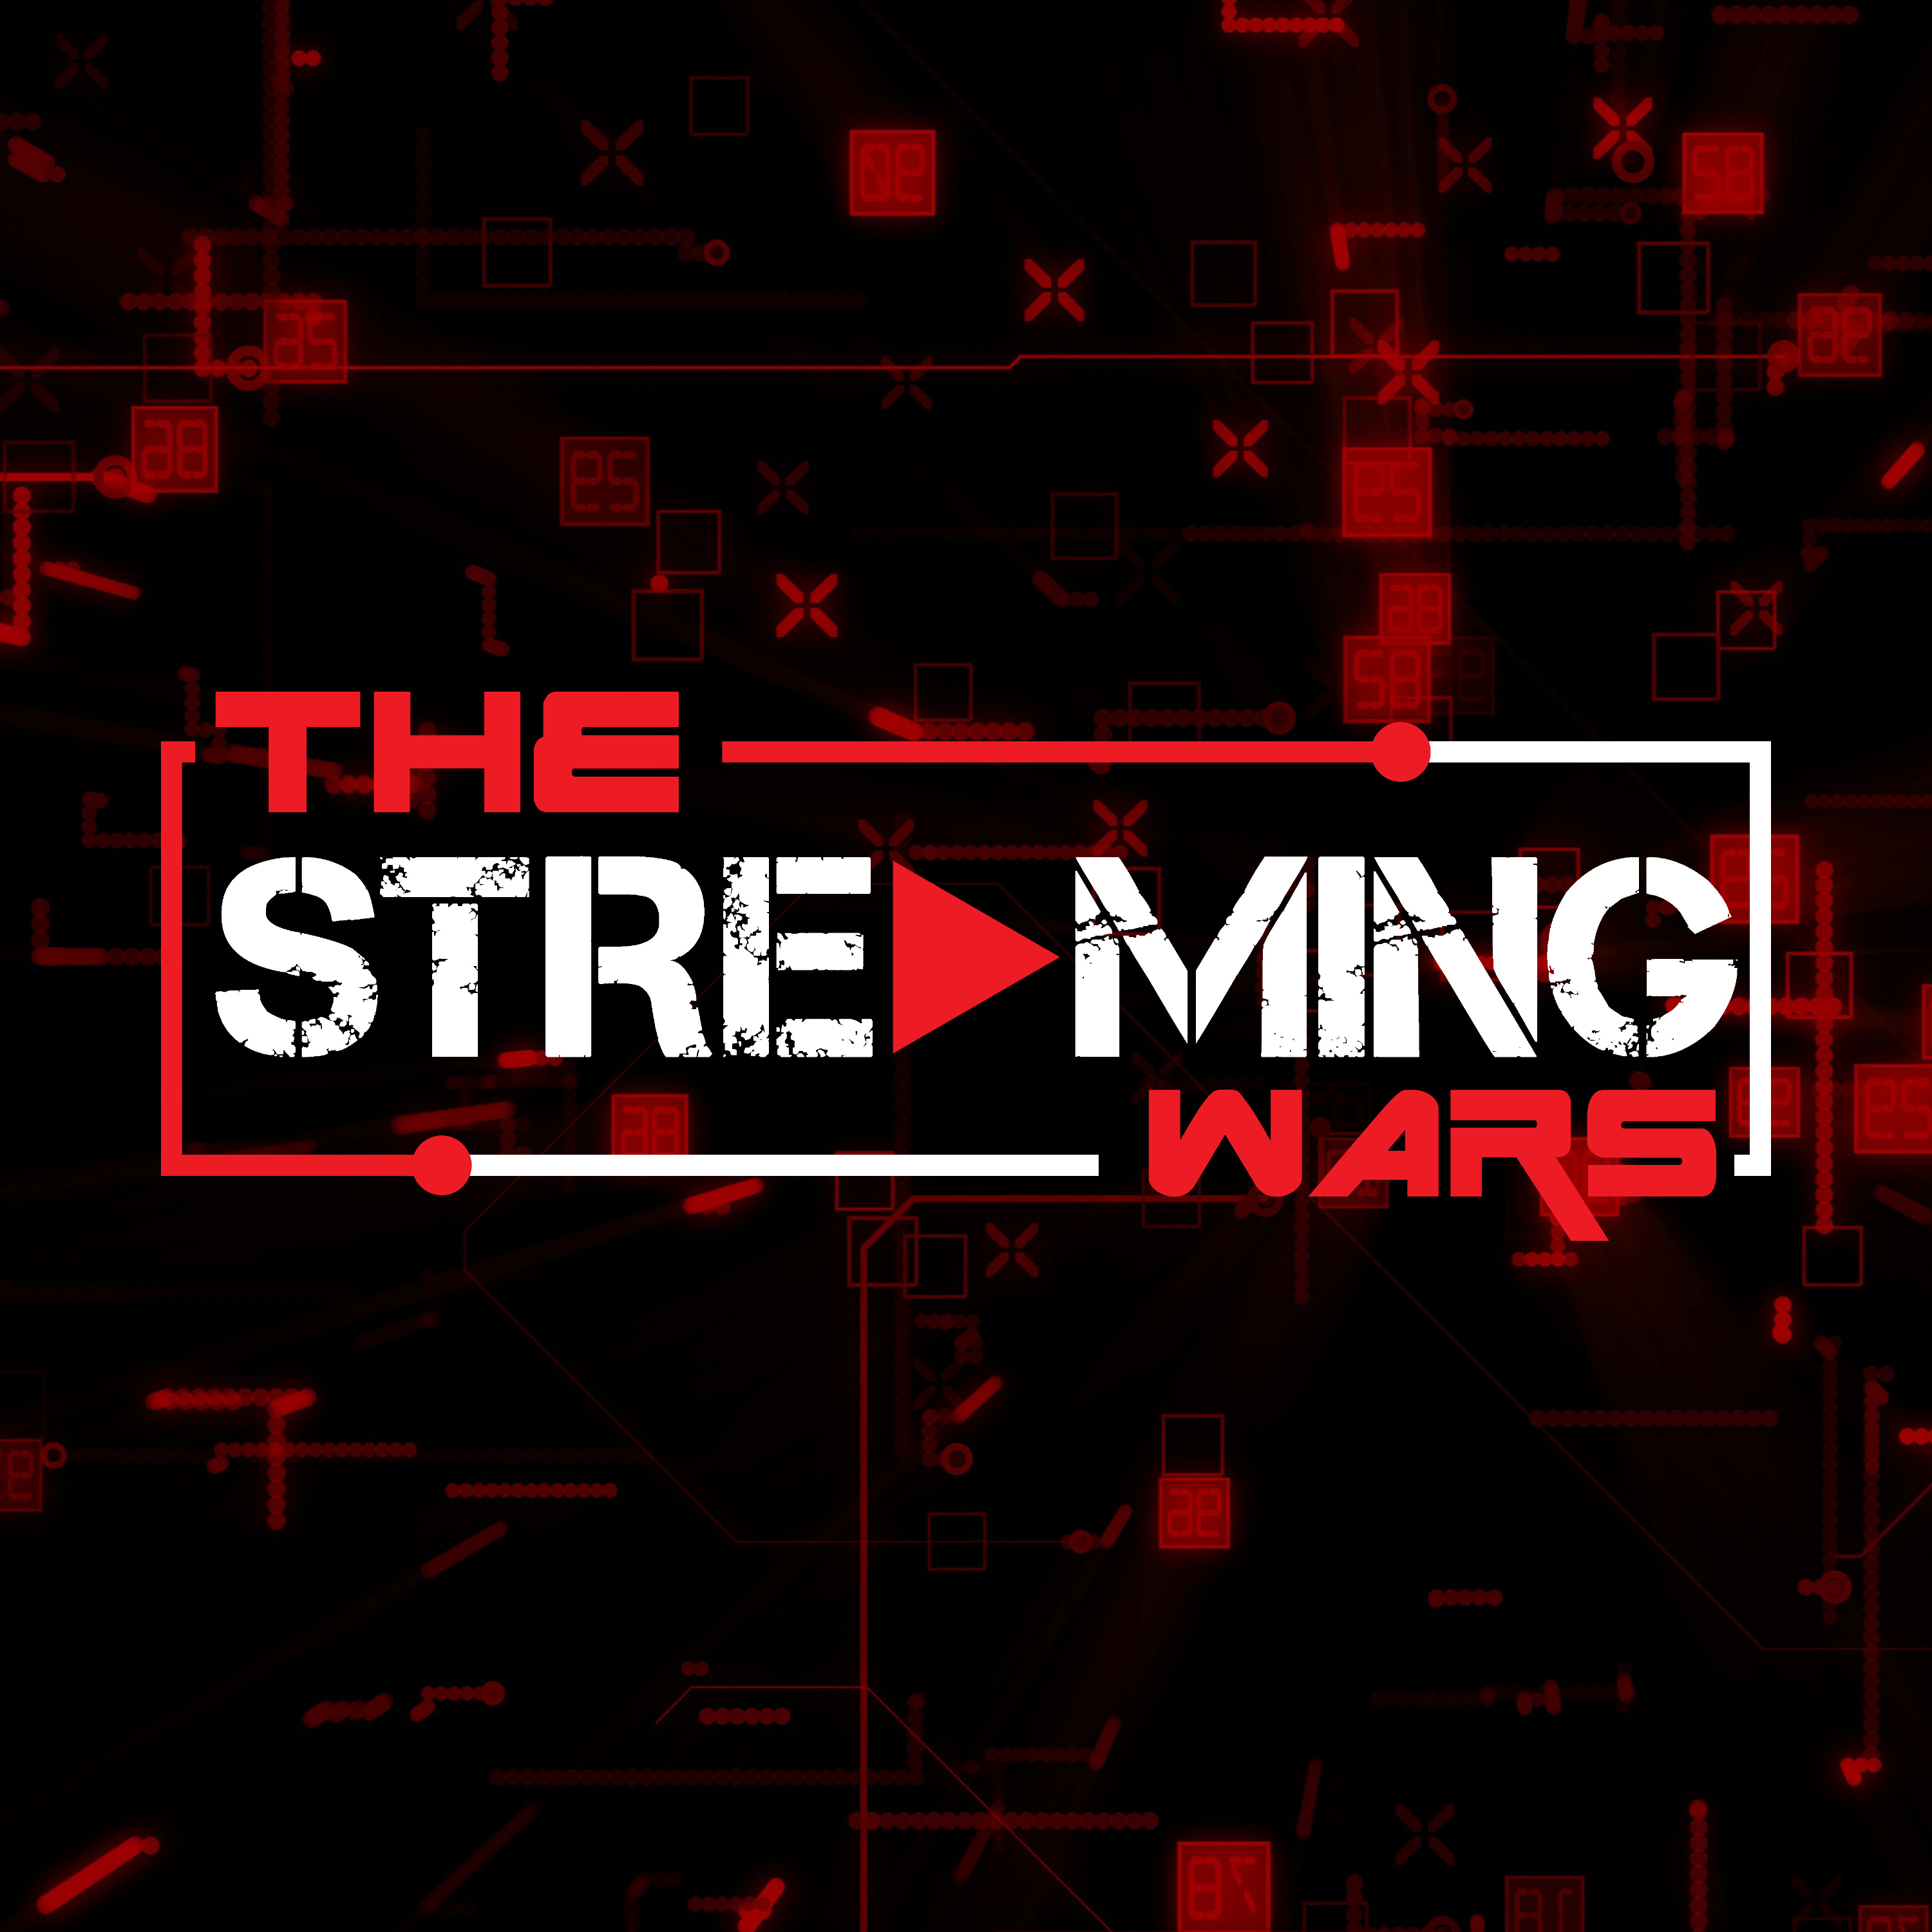 The Streaming Wars